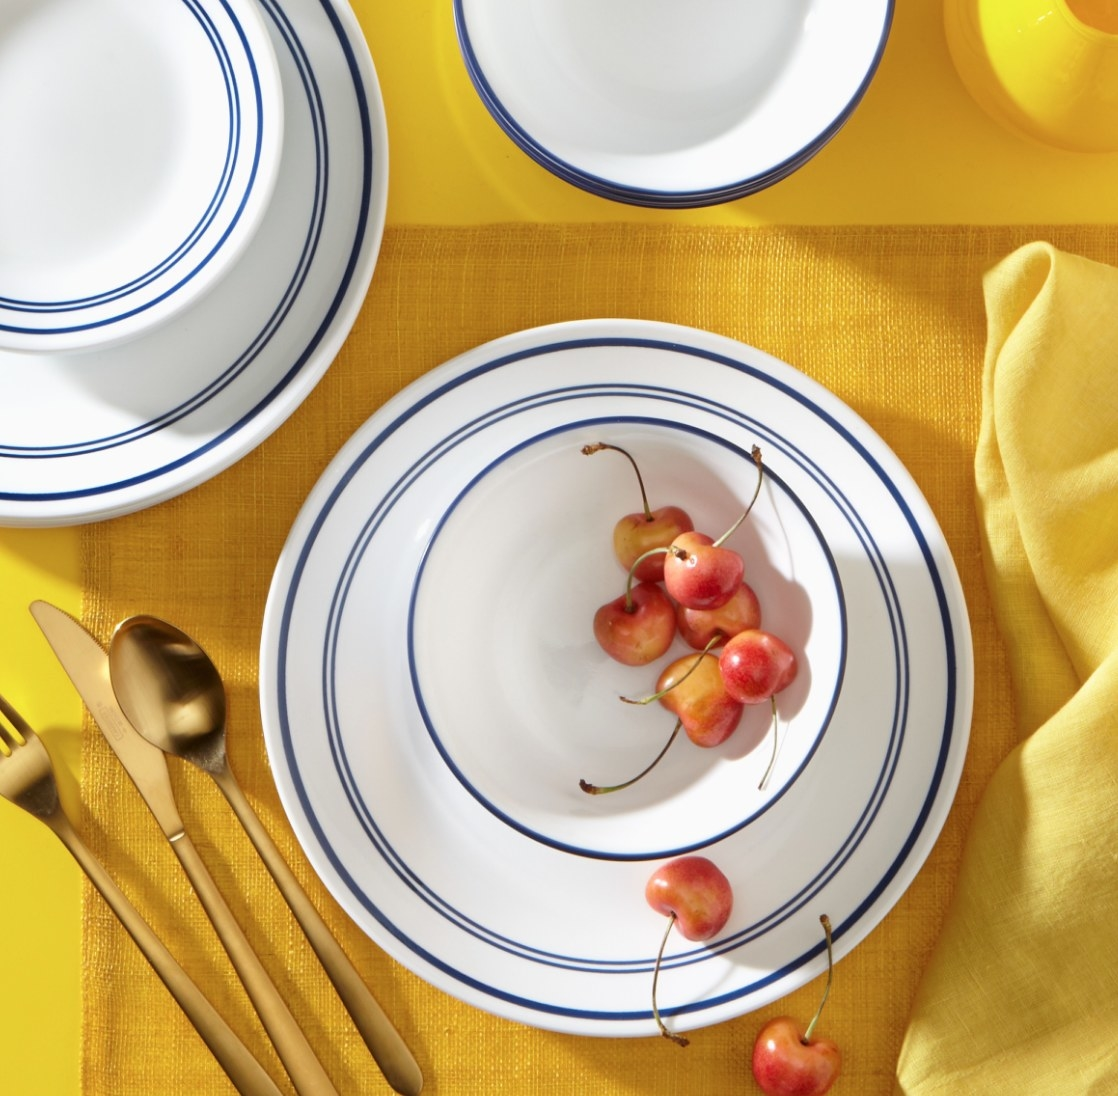 Blue and White Tableware on a yellow tablecloth